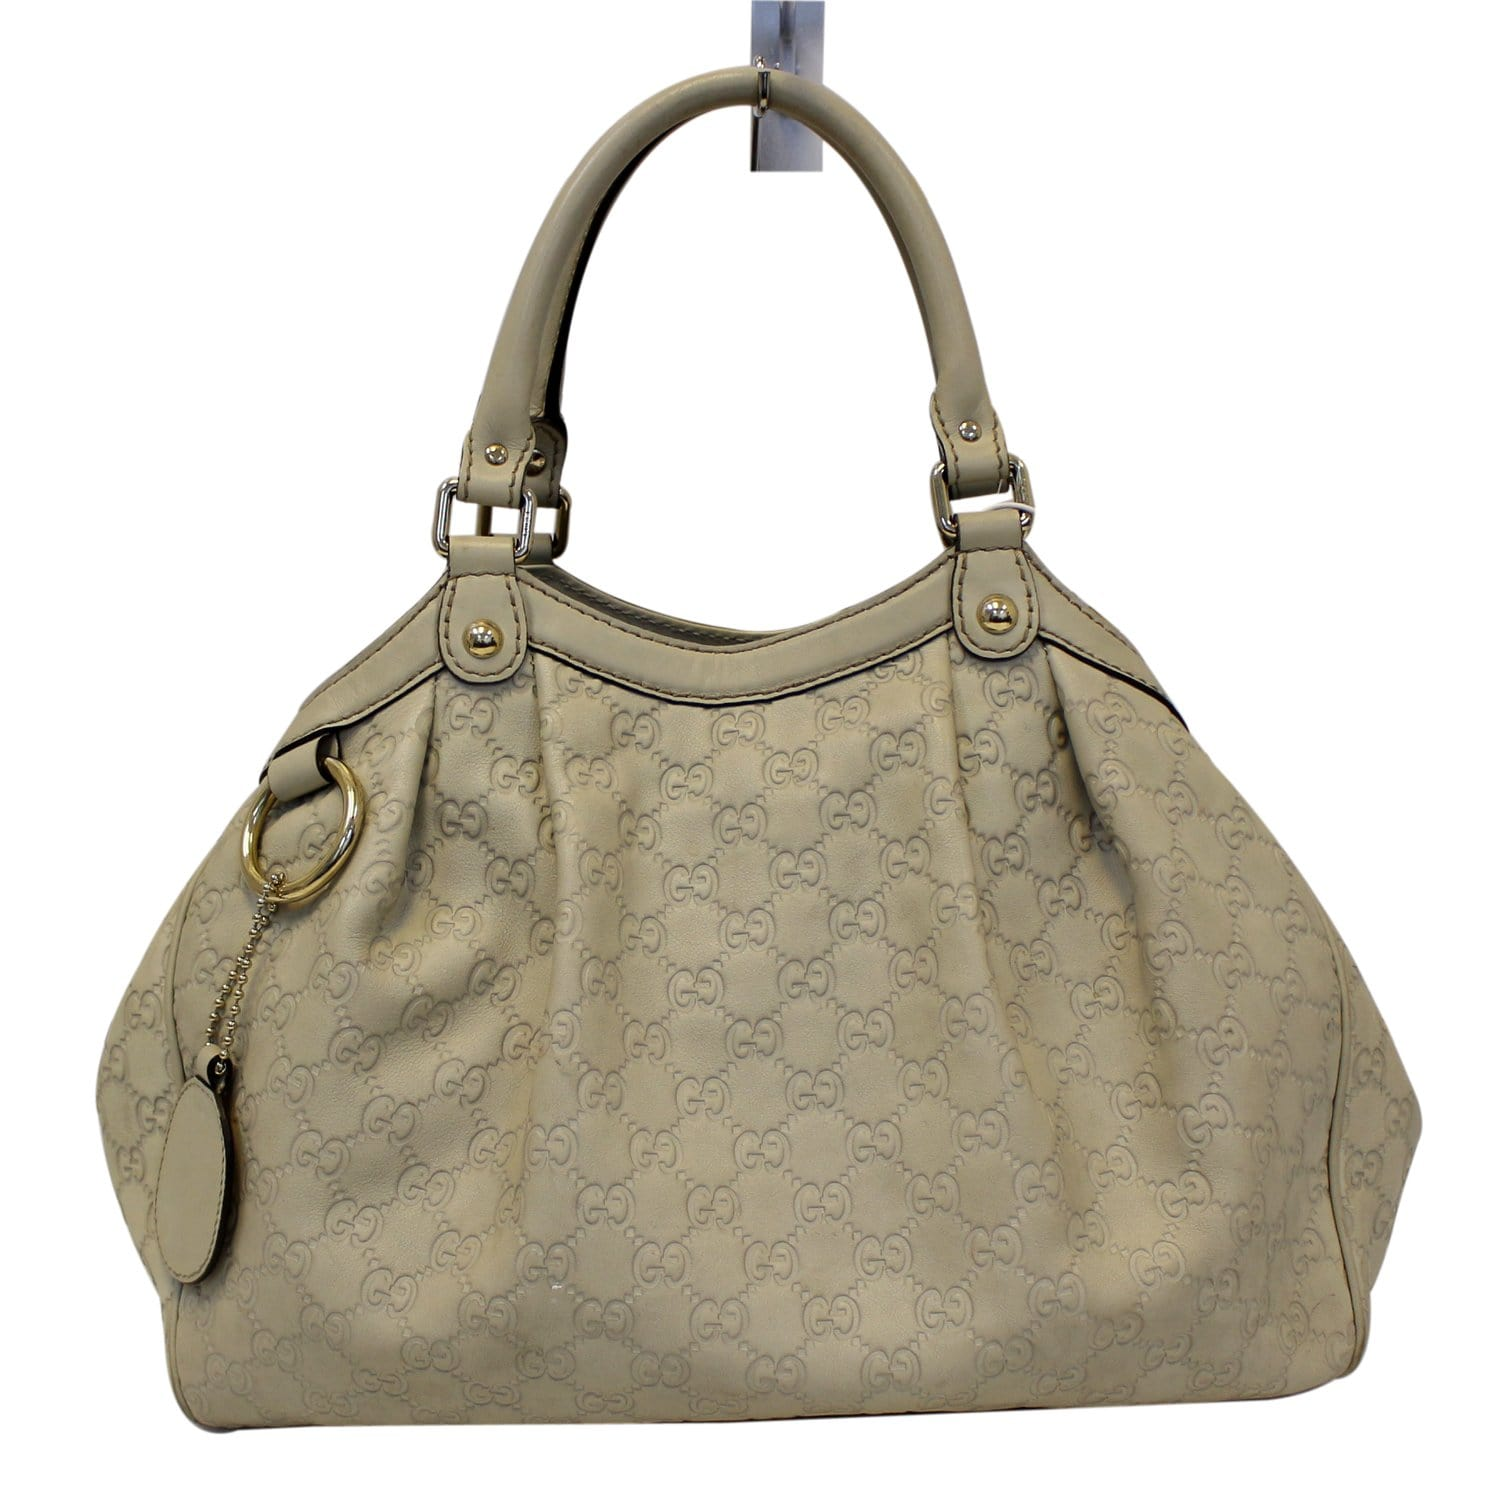 84d3446198d Gucci Sukey GG Guccissima Leather Medium Tote Bag